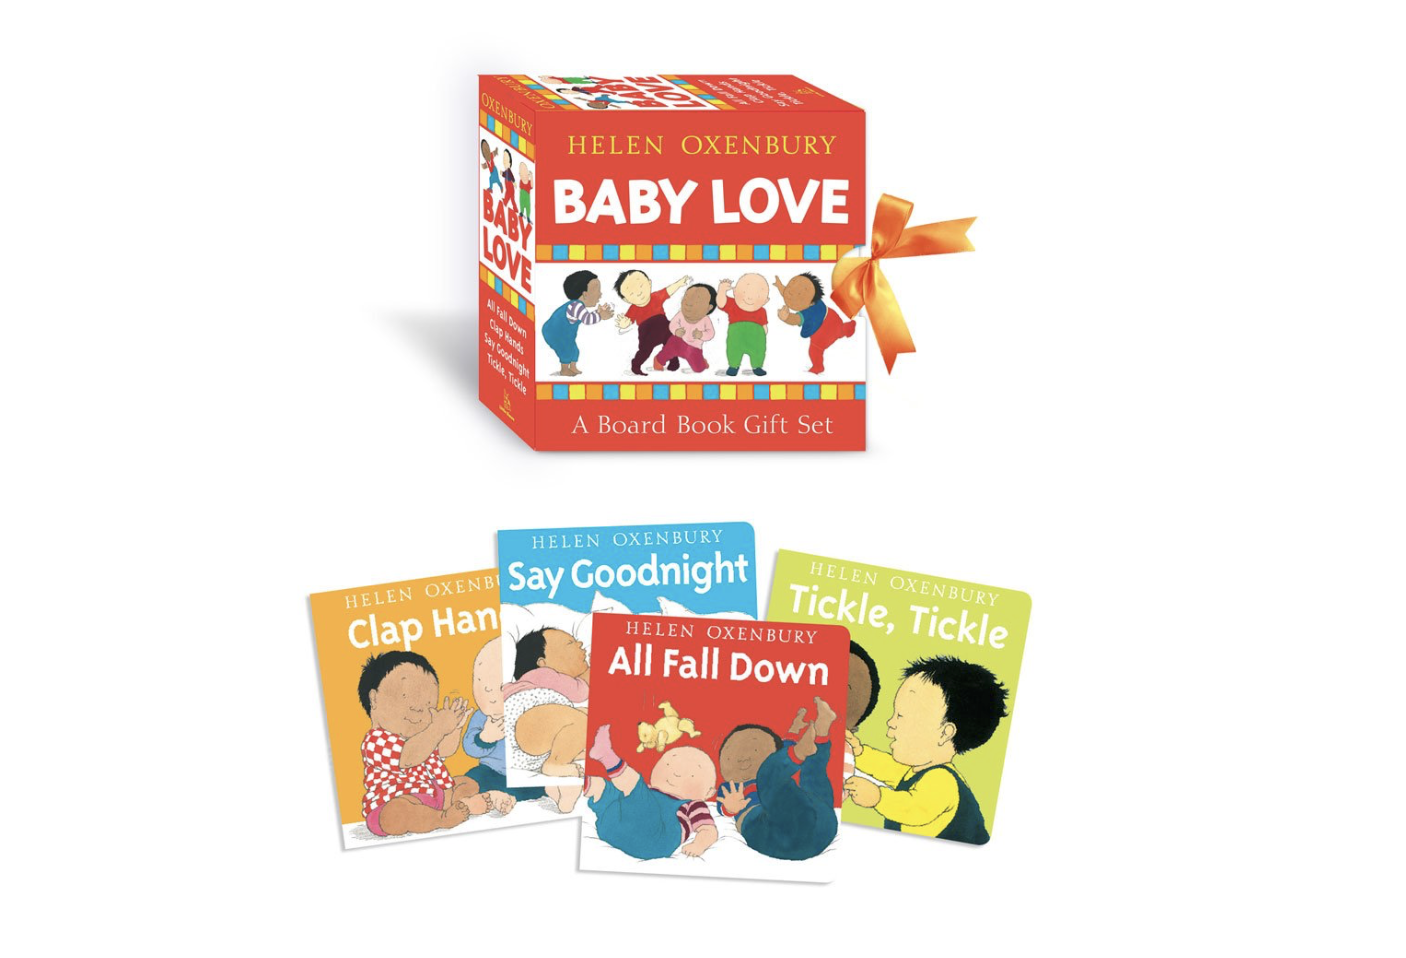 Baby Love Books by Helen Oxenbury - These board books are perfect for this age group. The book is short and the language is simple. Your child will be drawn to the pictures of other babies playing.